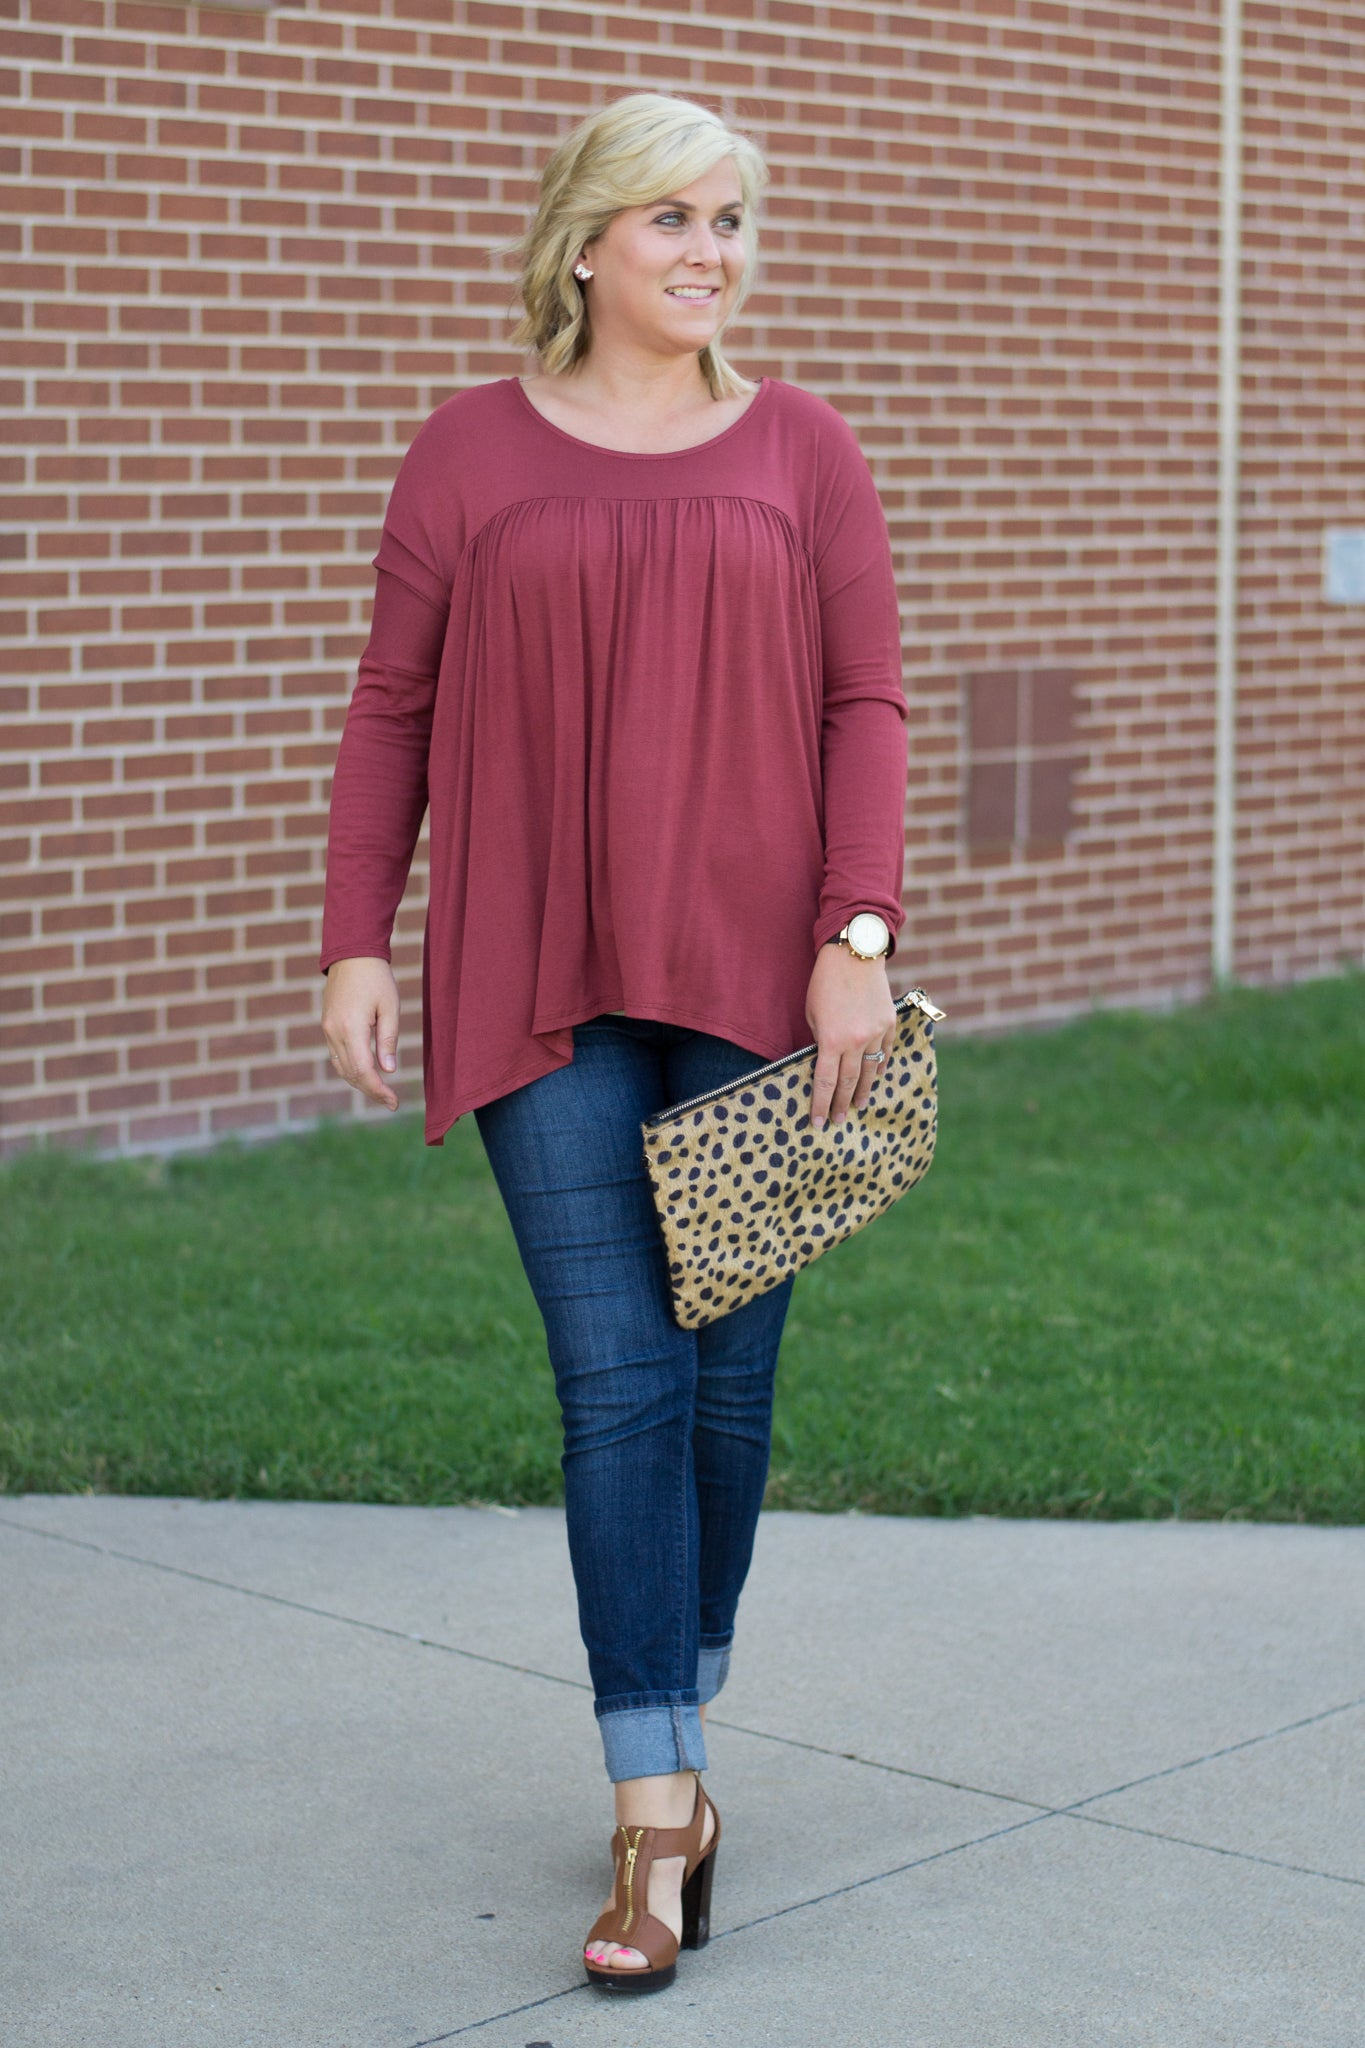 Fall Babydoll Top and Skinny Jeans